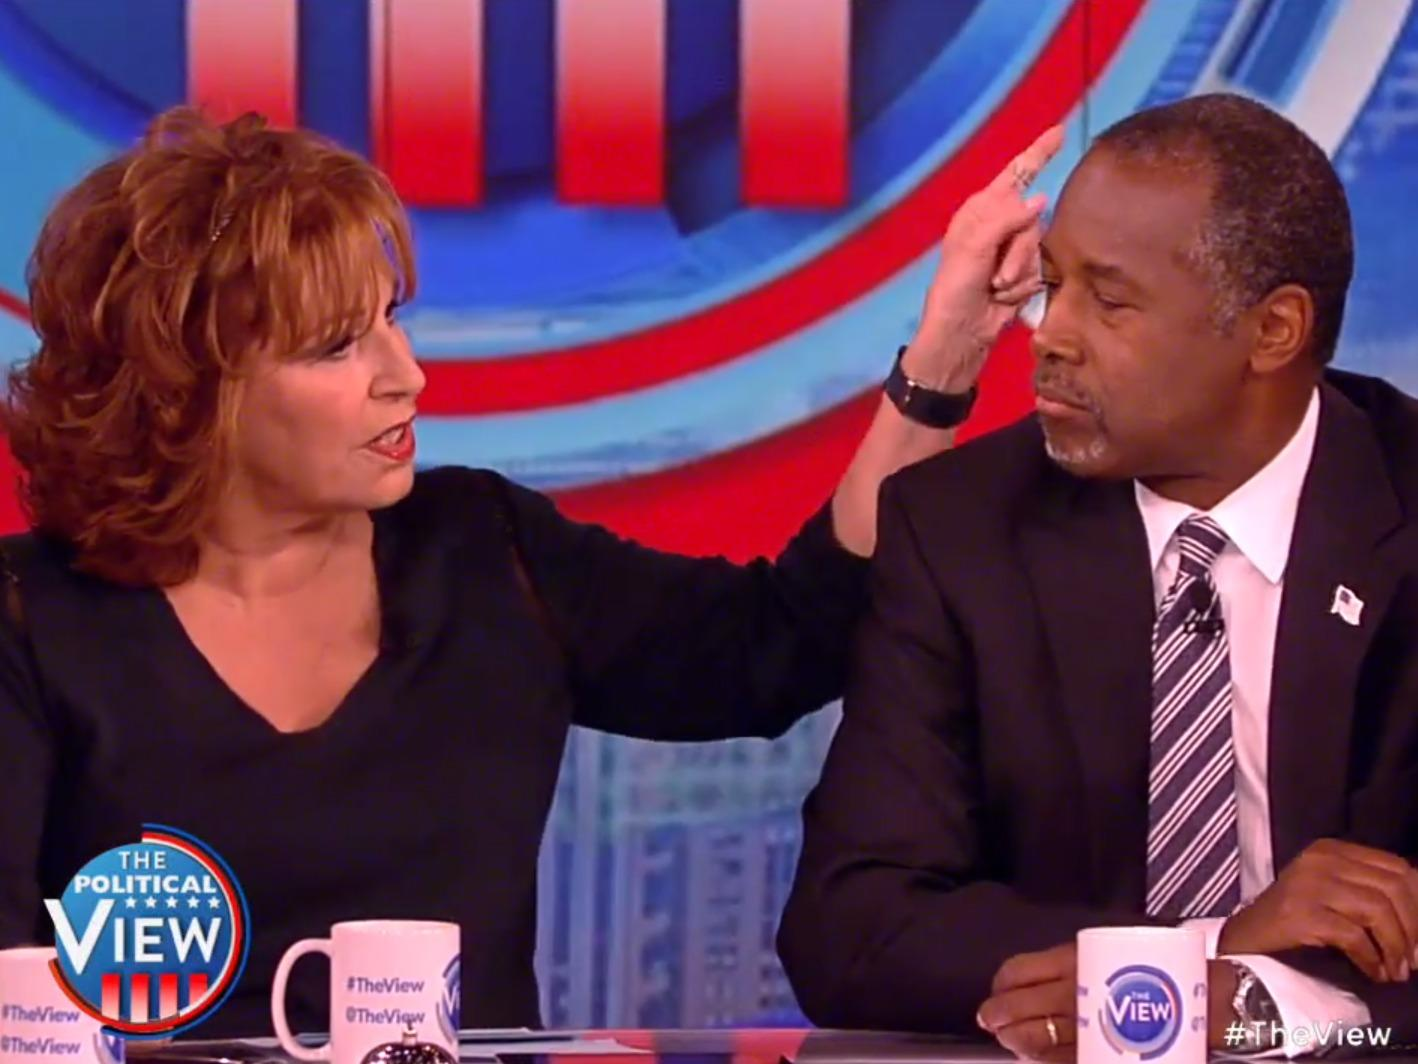 Ben Carson just had an epic interview on 'The View' about Nazis, evolution, and hurricanes